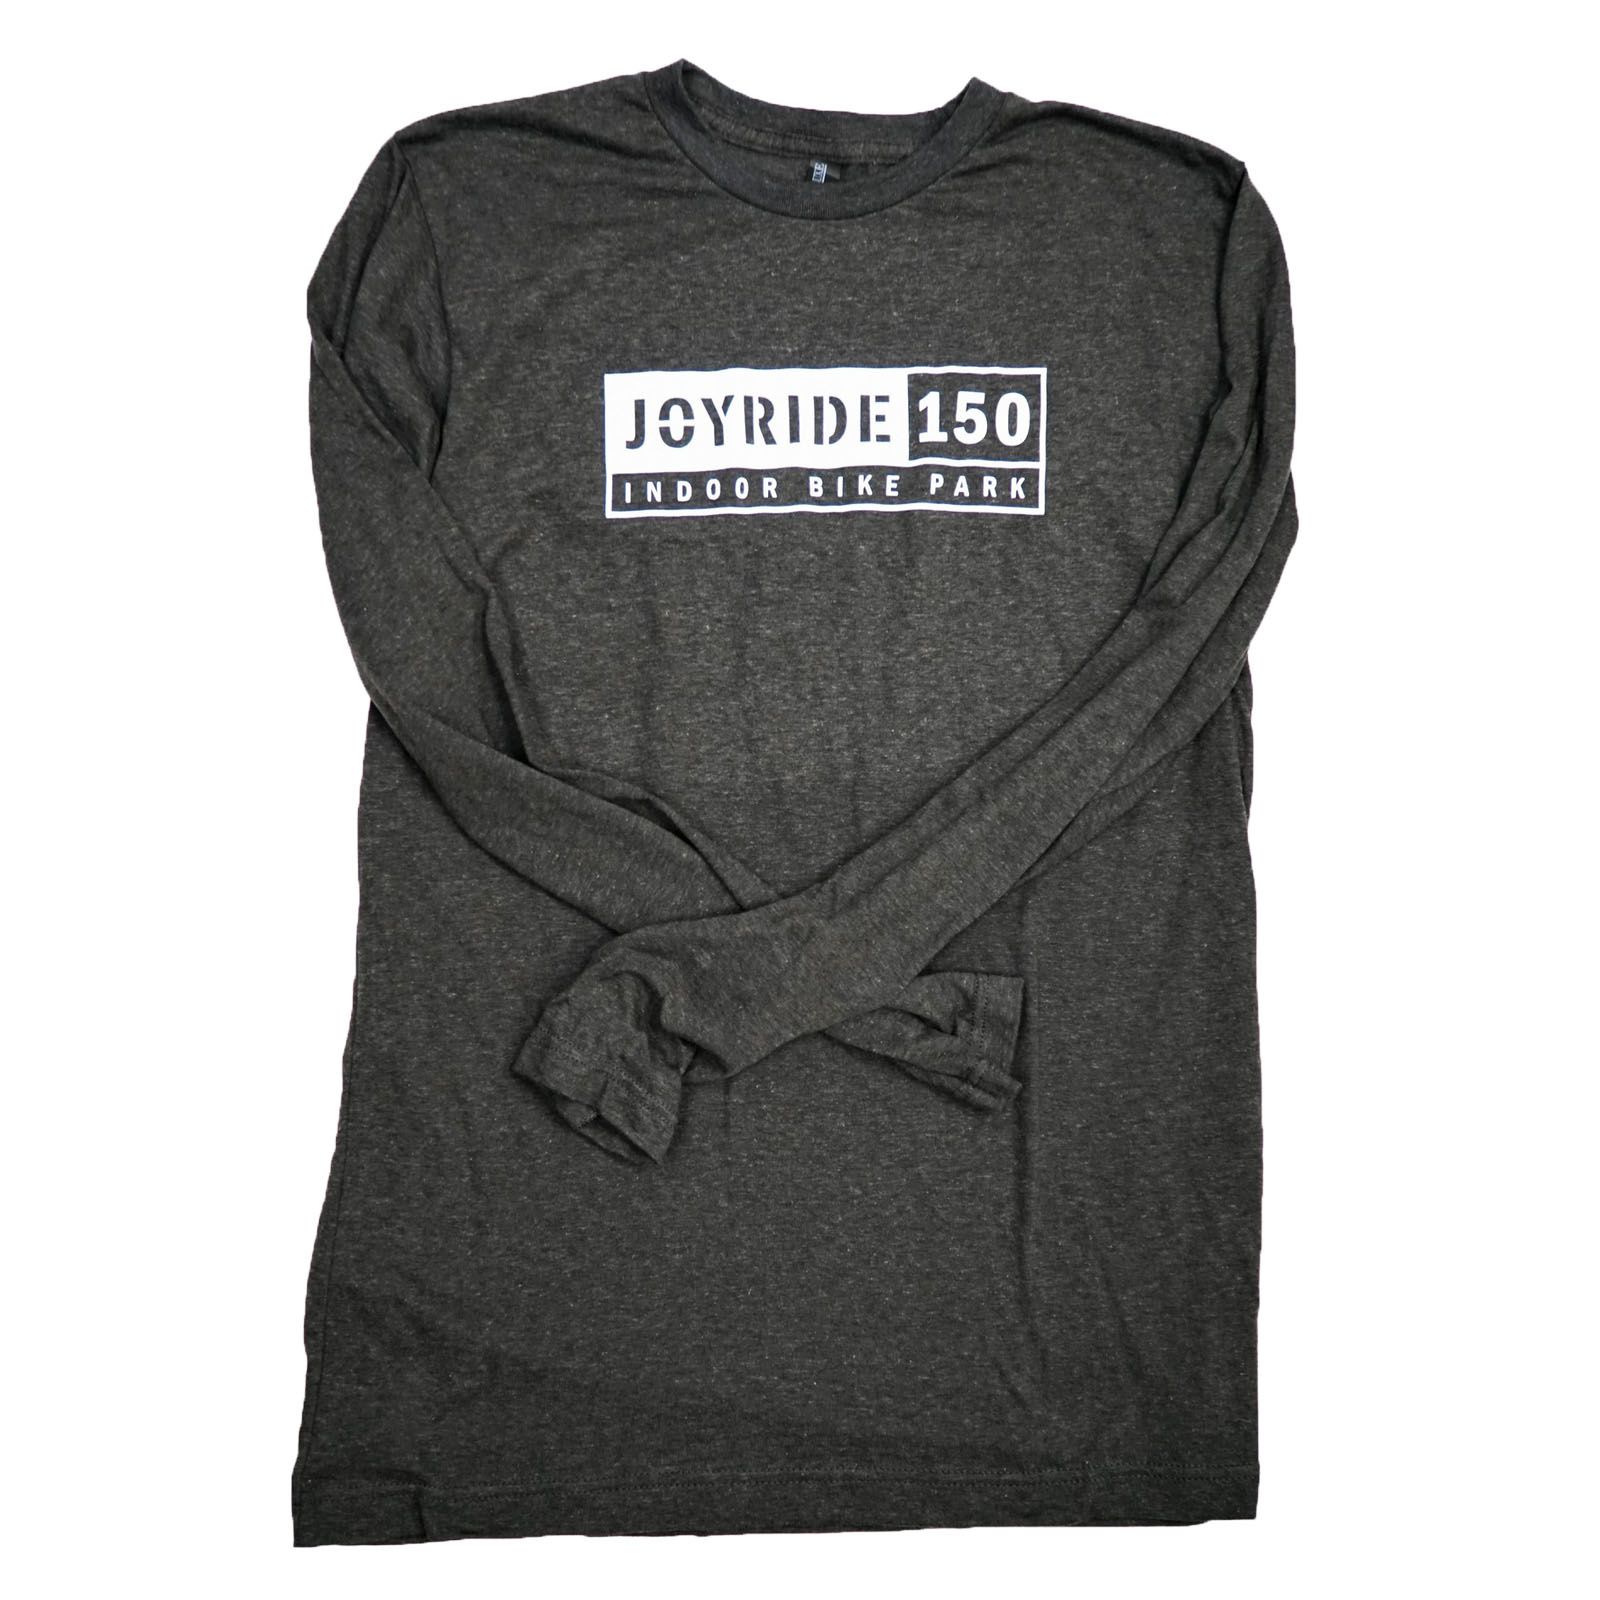 Joyride 150 Long Sleeve Tee